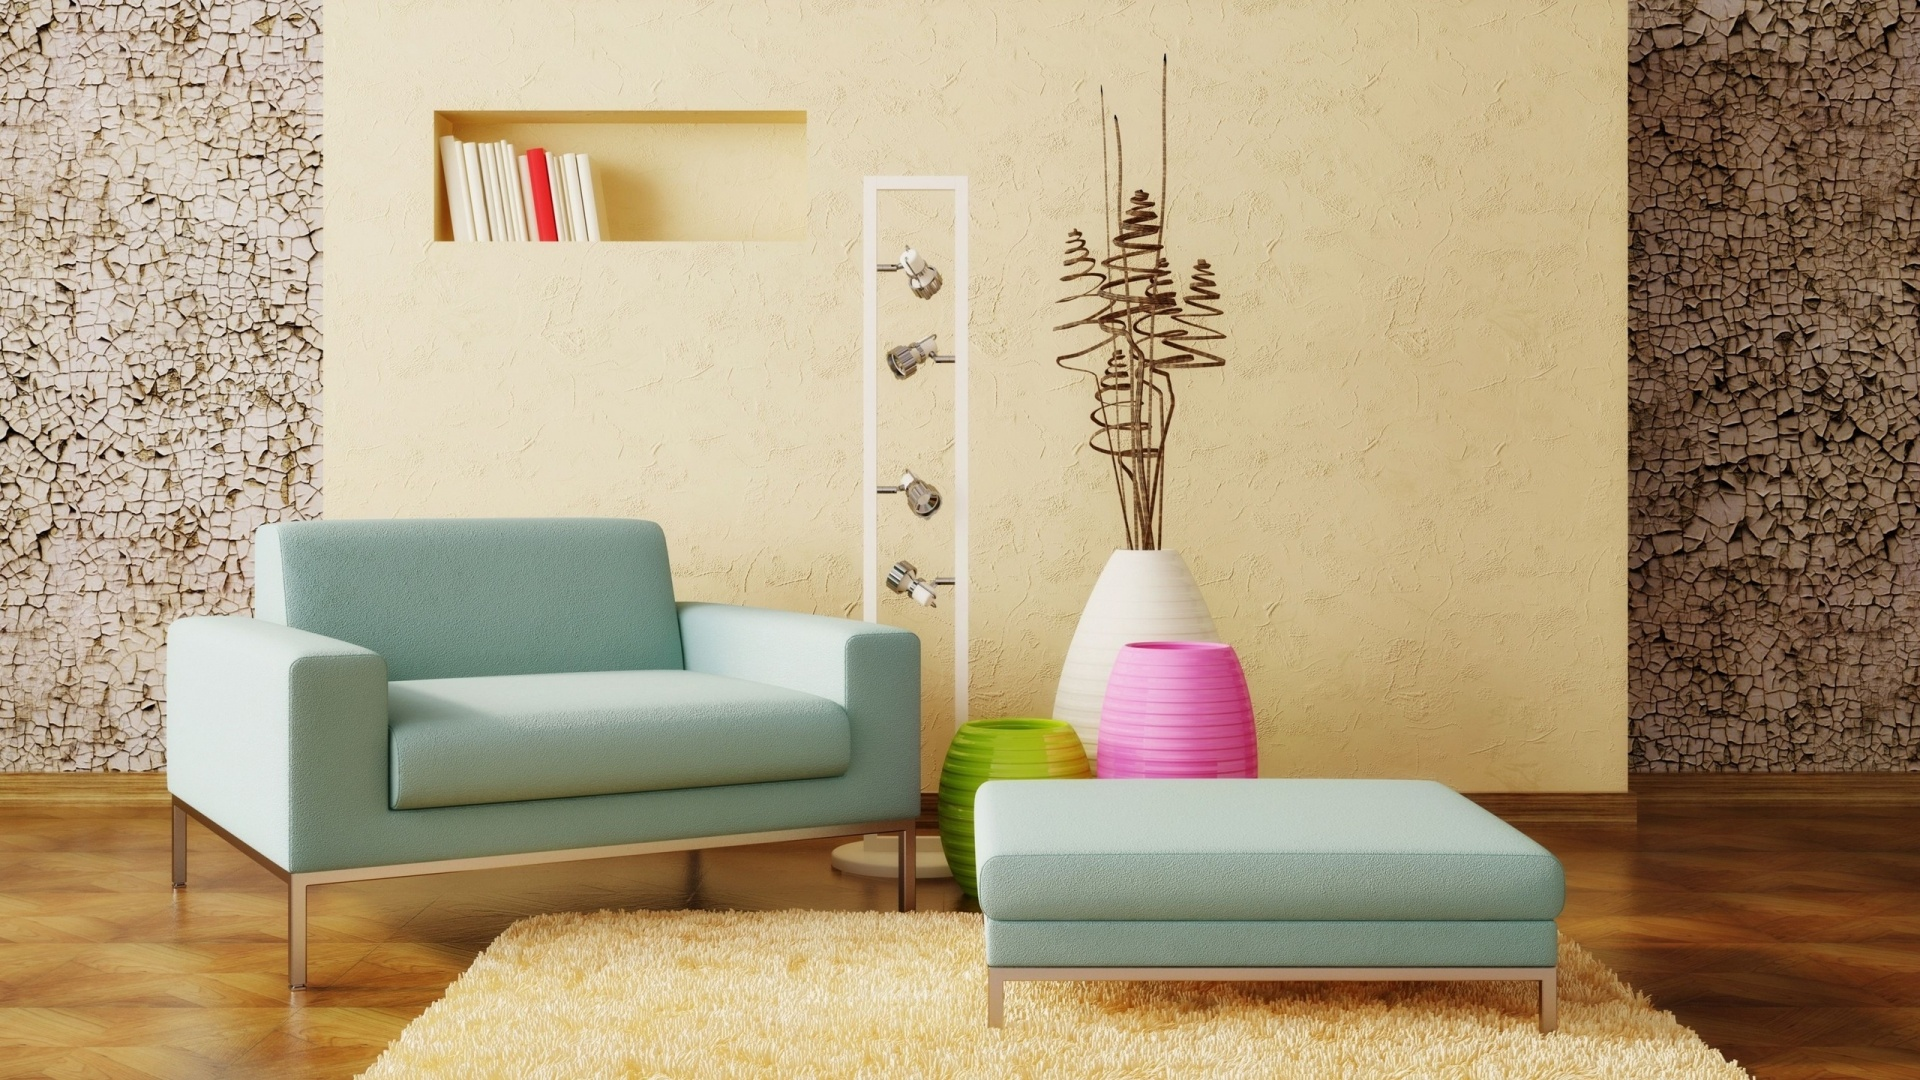 Download Wallpaper Stores In Houston Gallery